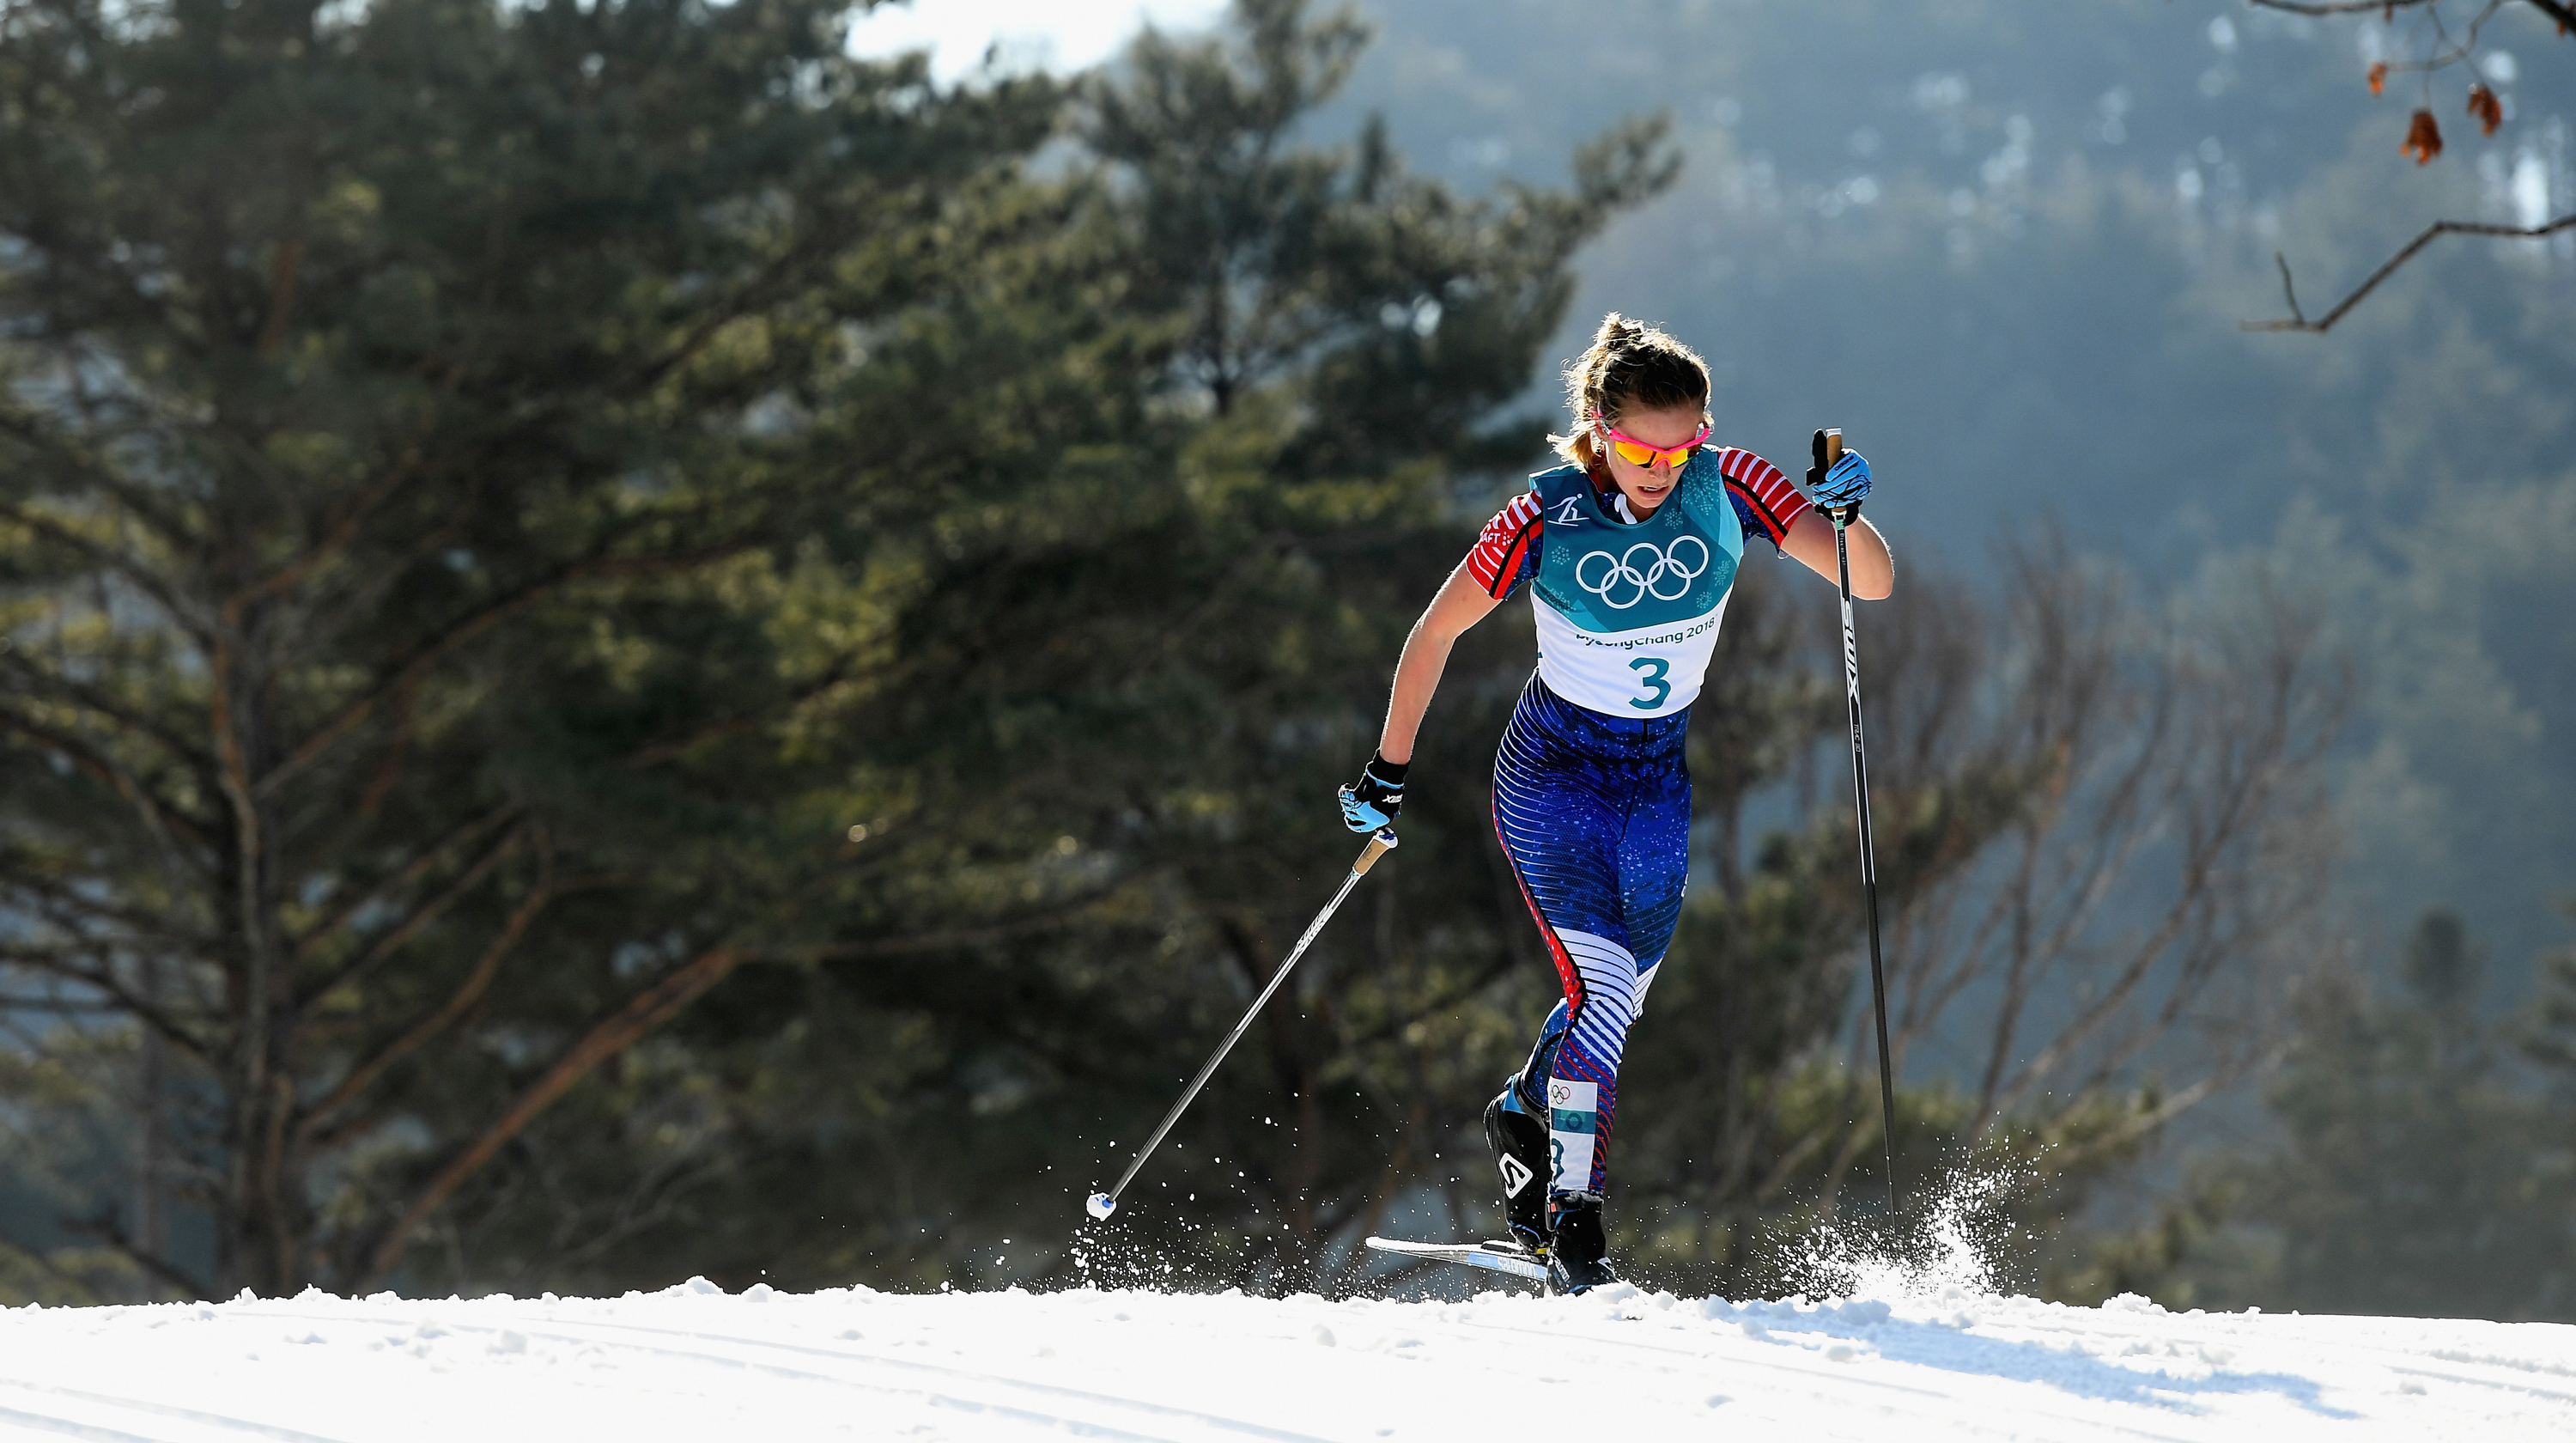 Jessica Diggins finished seventh in the final event of the 2018 Olympic Winter Games Sunday in PyeongChang, South Korea. (Getty Images - Quinn Rooney)